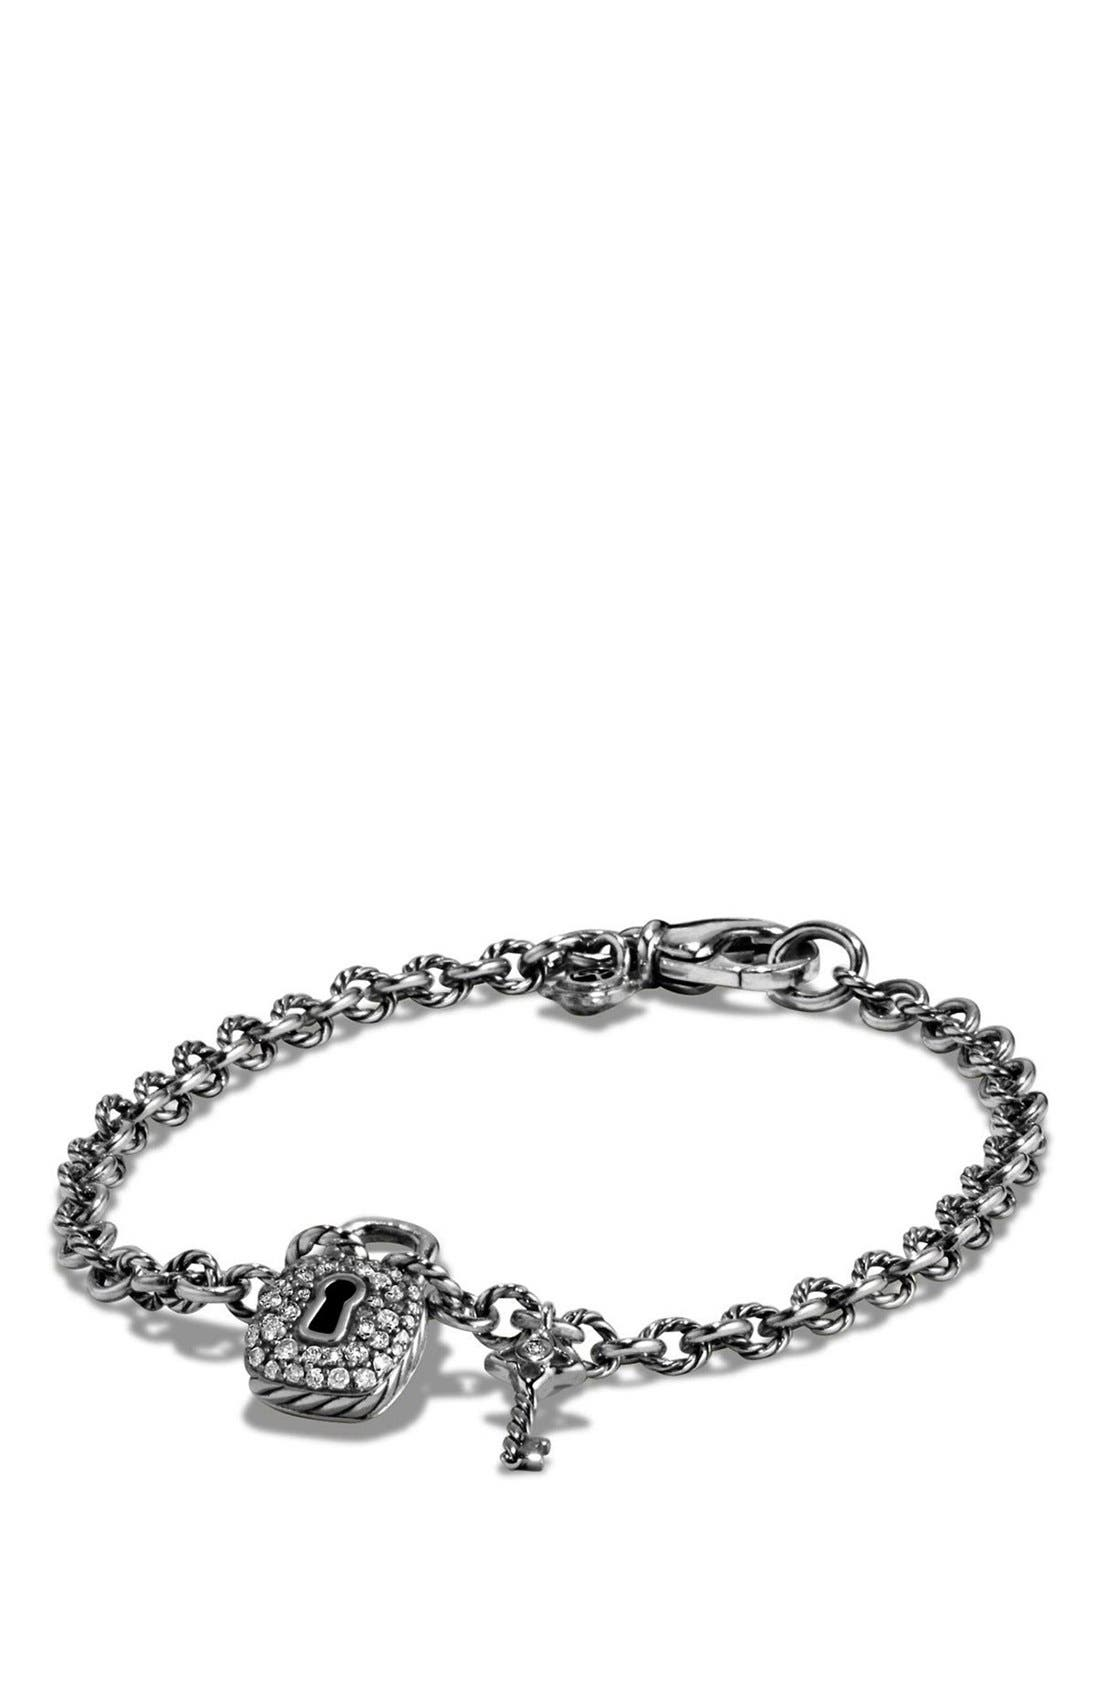 DAVID YURMAN Cable Collectibles Lock and Key Charm Bracelet with Diamonds